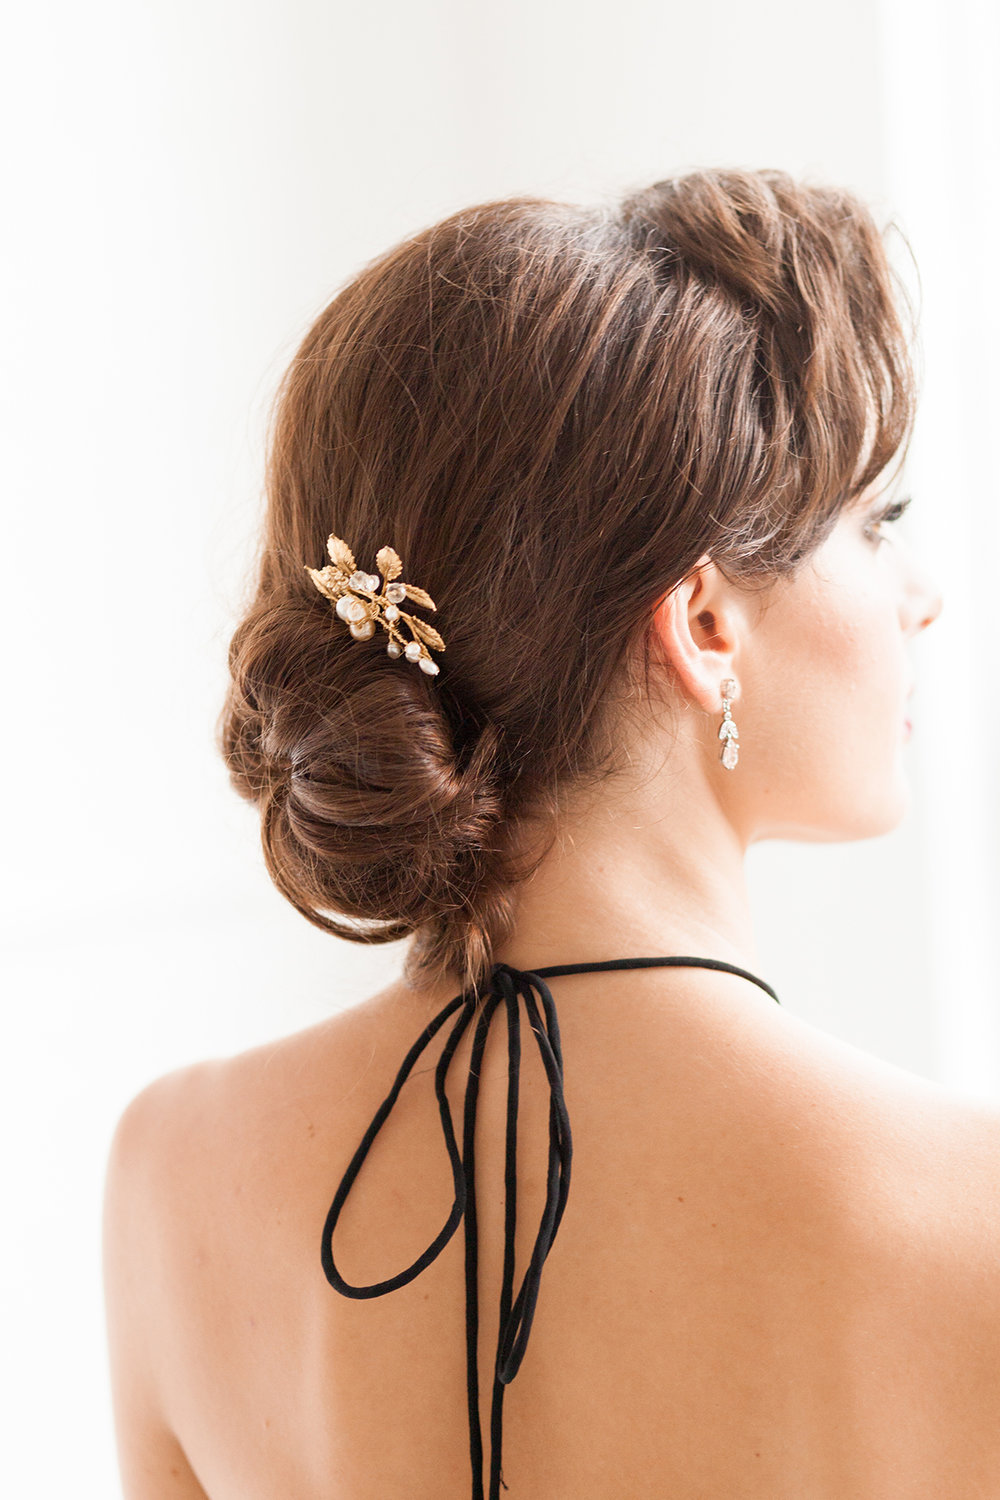 Bridal Hair Accessories - Industrial Warehouse Wedding -- The Overwhelmed Bride - Wedding Blog